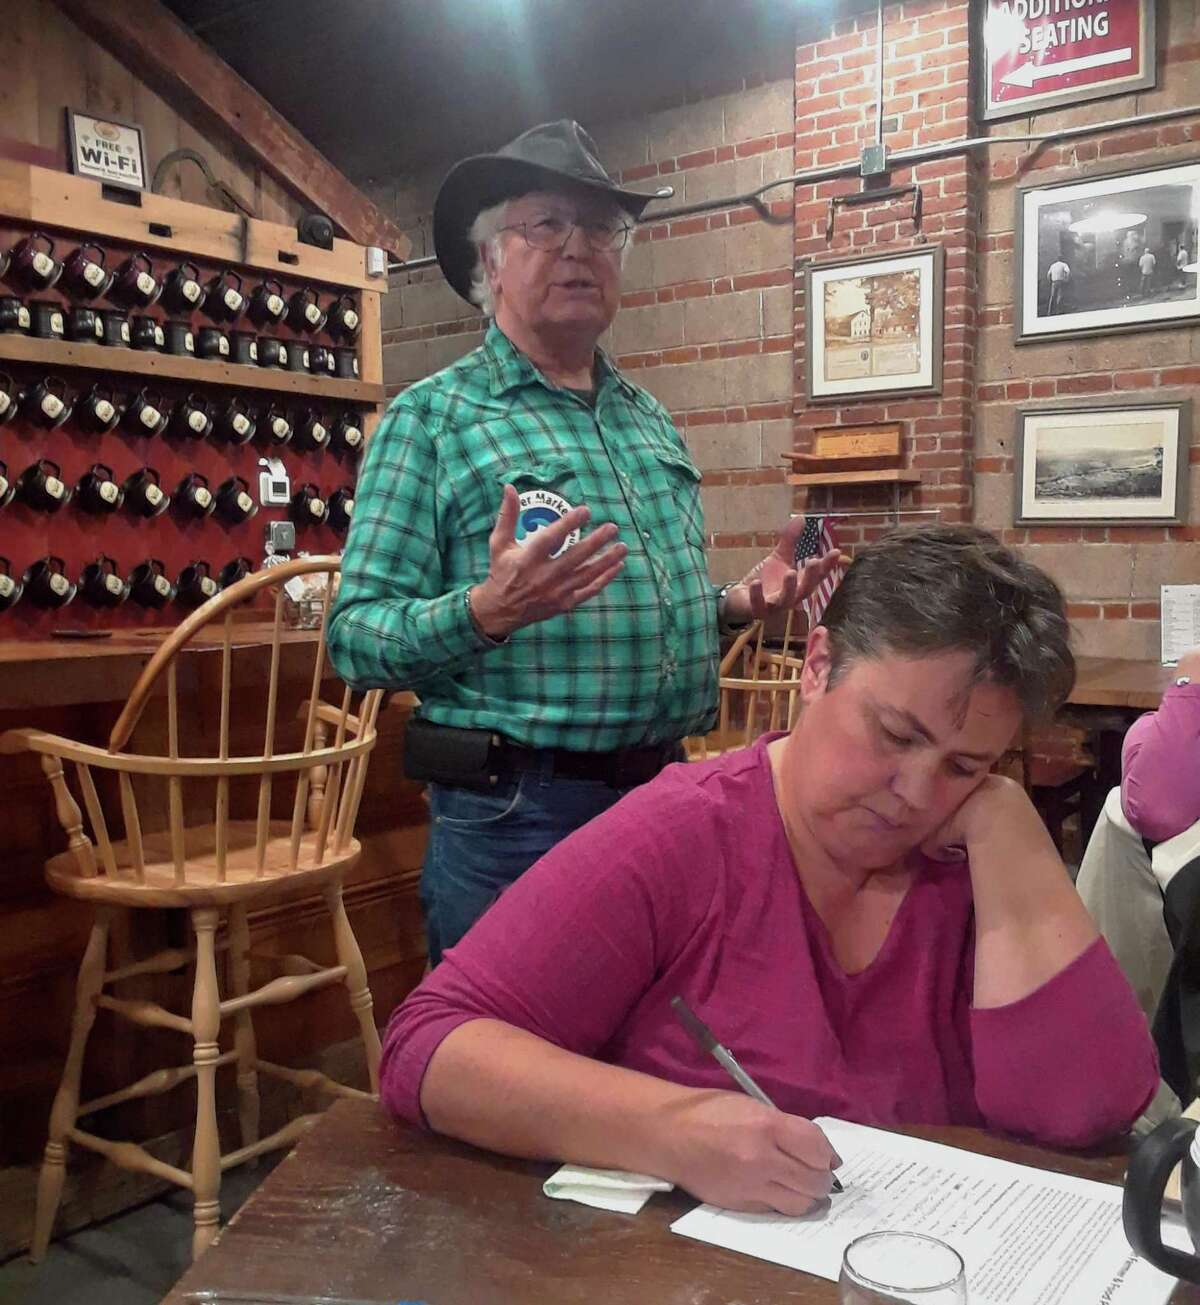 Members of the Mad River Market food co-op, who hope to establish a community-owned grocery store in Winsted, held a brainstorming session and informational meeting with local farmers at Little Red Barn Brewers Tuesday night. Above, co-op board president Glen Zeh greets guests at the meeting.